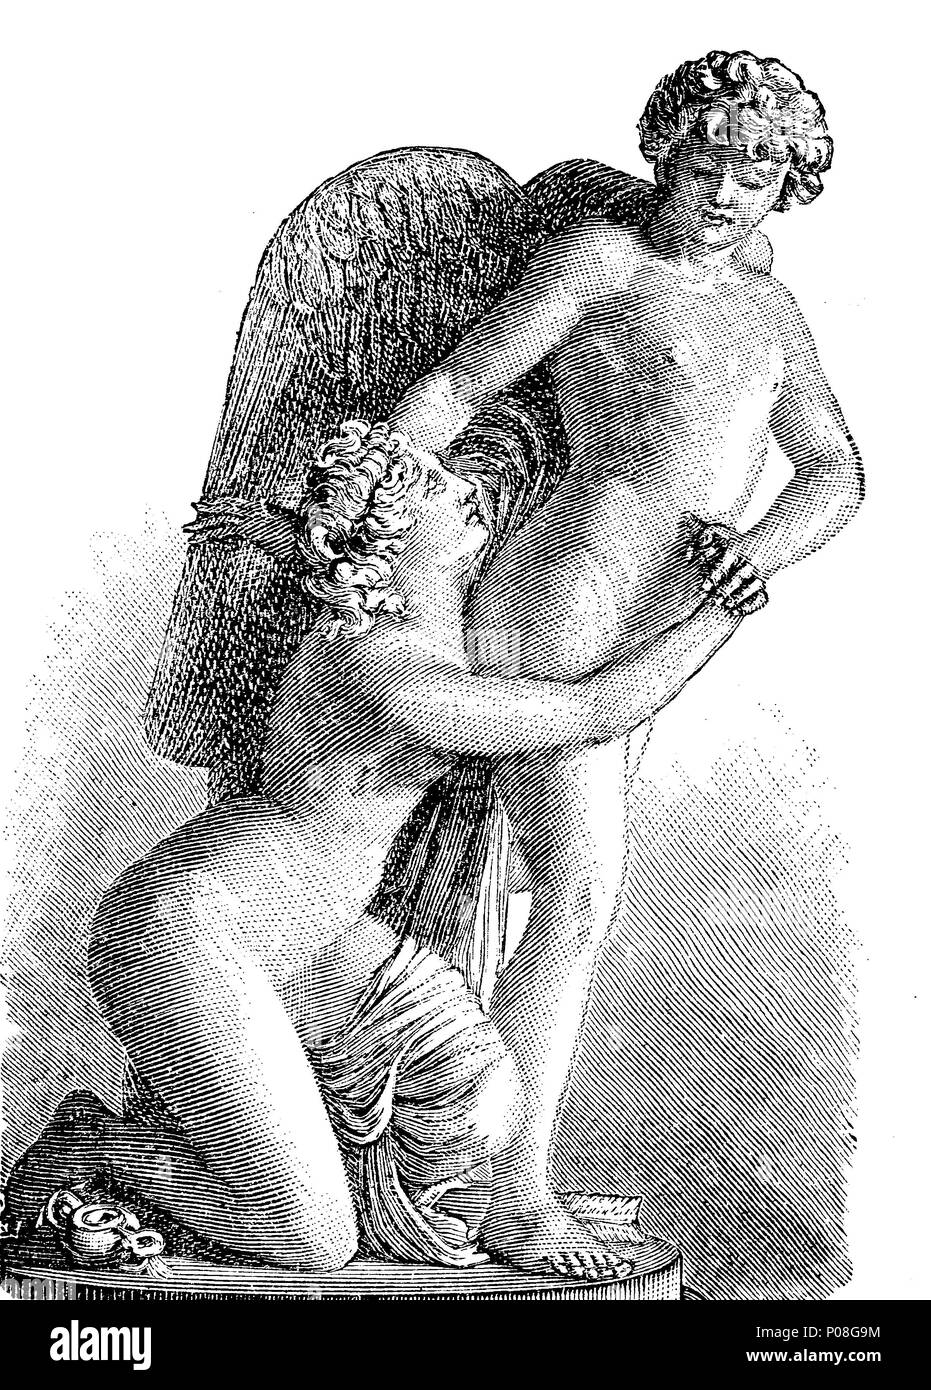 Sergel: Amor und Psyche, Cupid and Psyche, a story originally from Metamorphoses written in the 2nd century AD by Lucius Apuleius Madaurensis, digital improved reproduction of an original print from the year 1881 - Stock Image